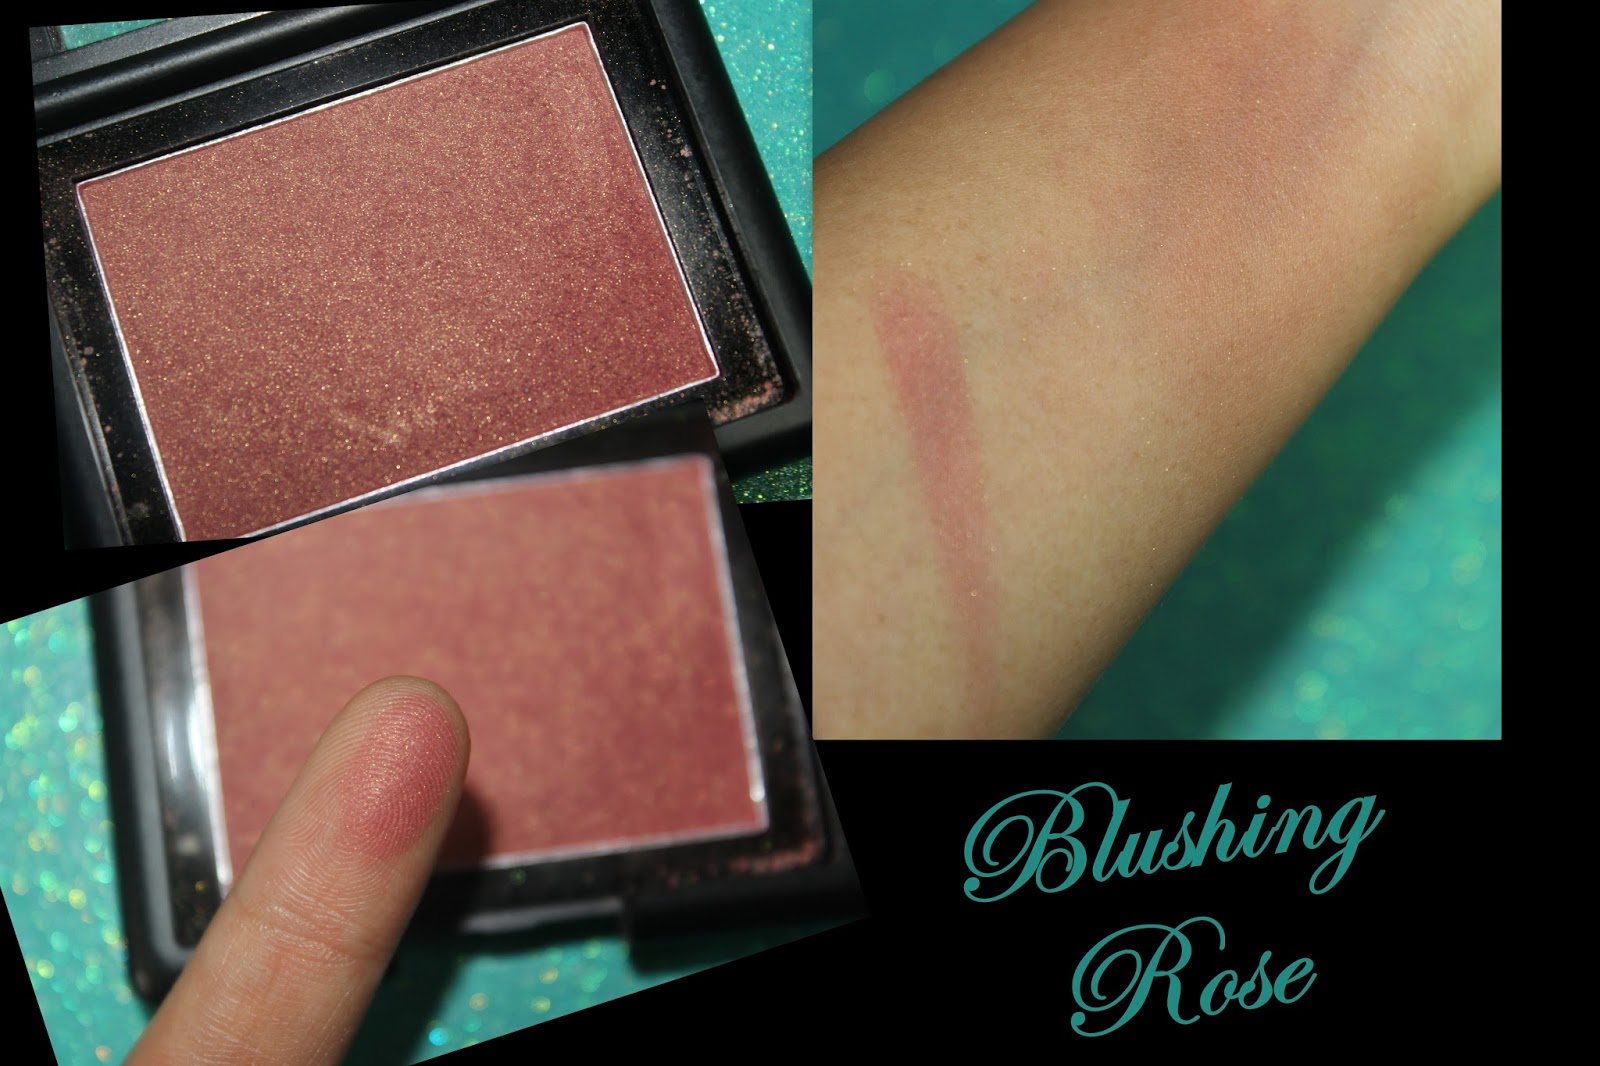 Elf blushing rose swatch